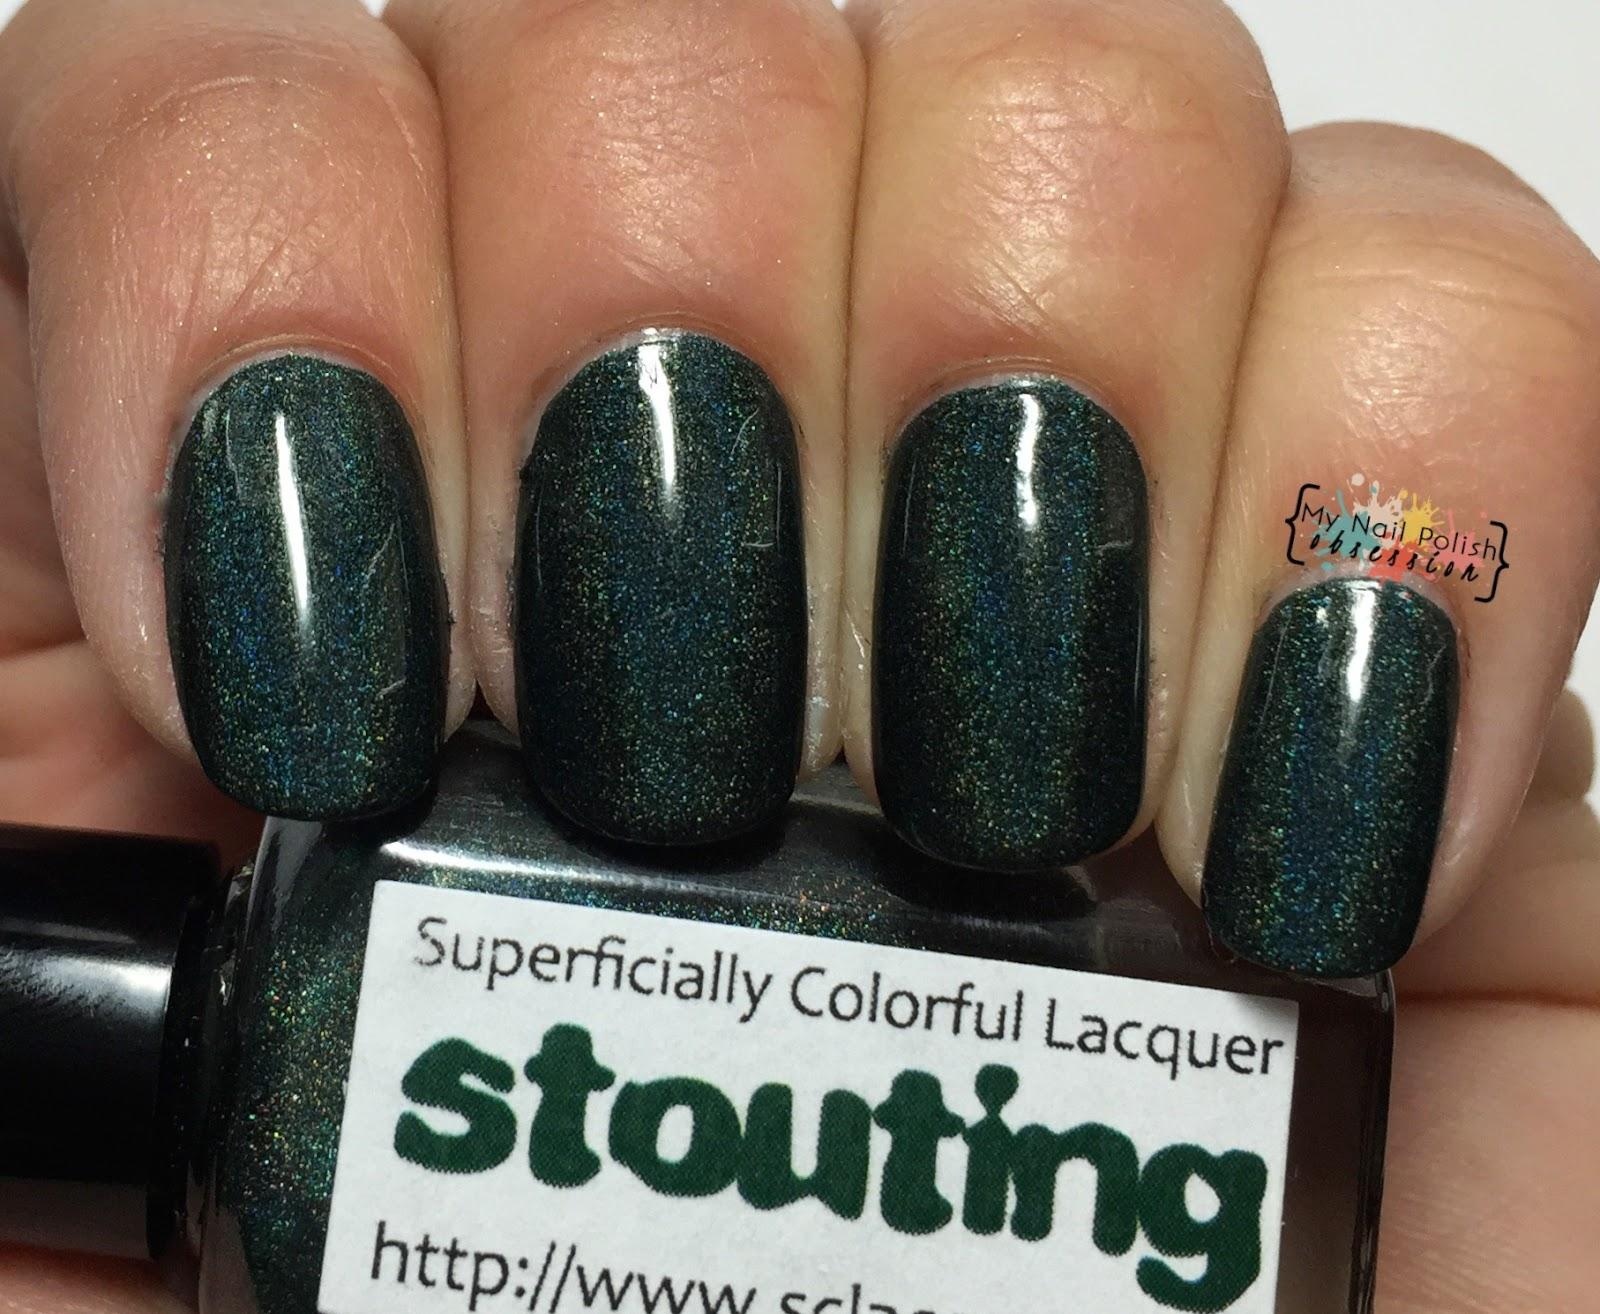 Superficially Colorful Lacquer Stouting